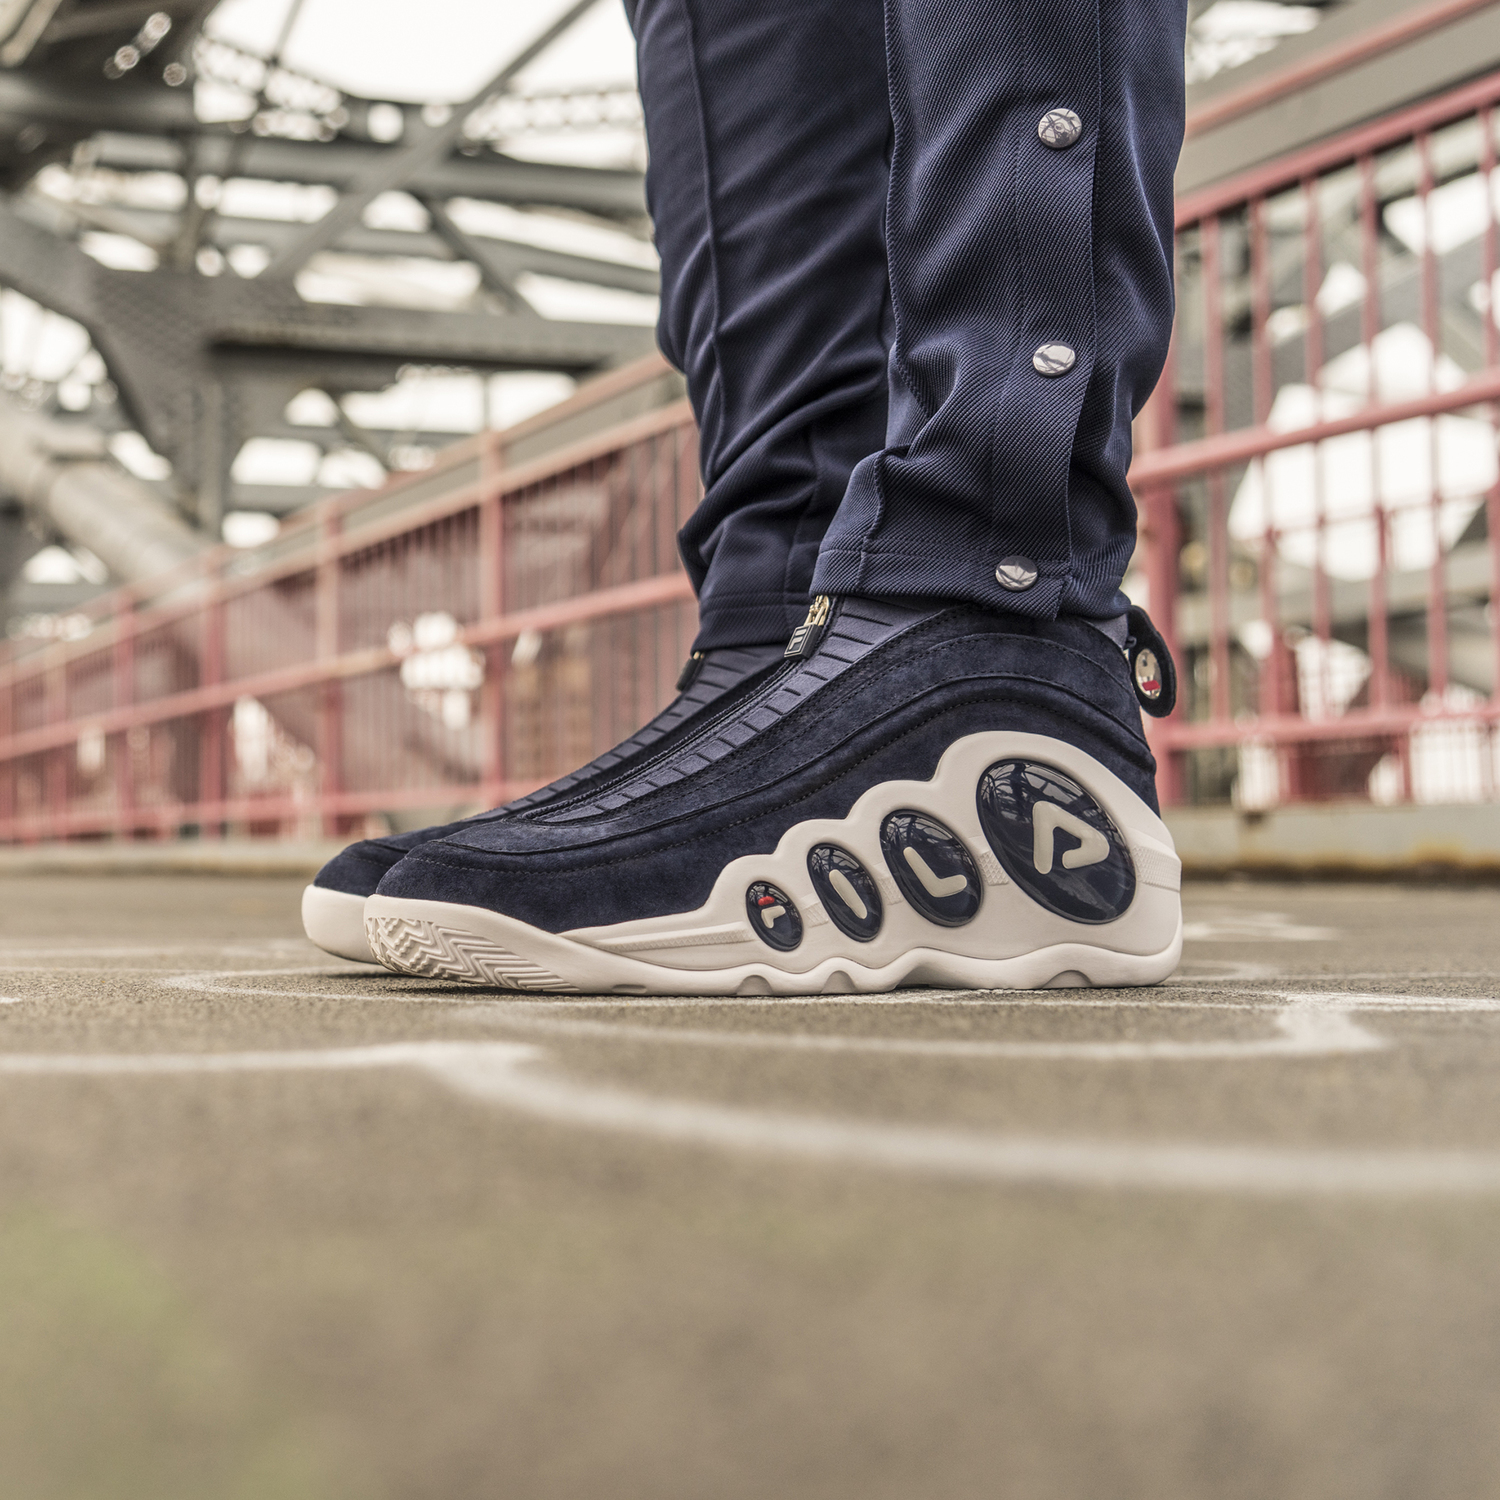 FILA Bubbles Zip Midnight Pack 6